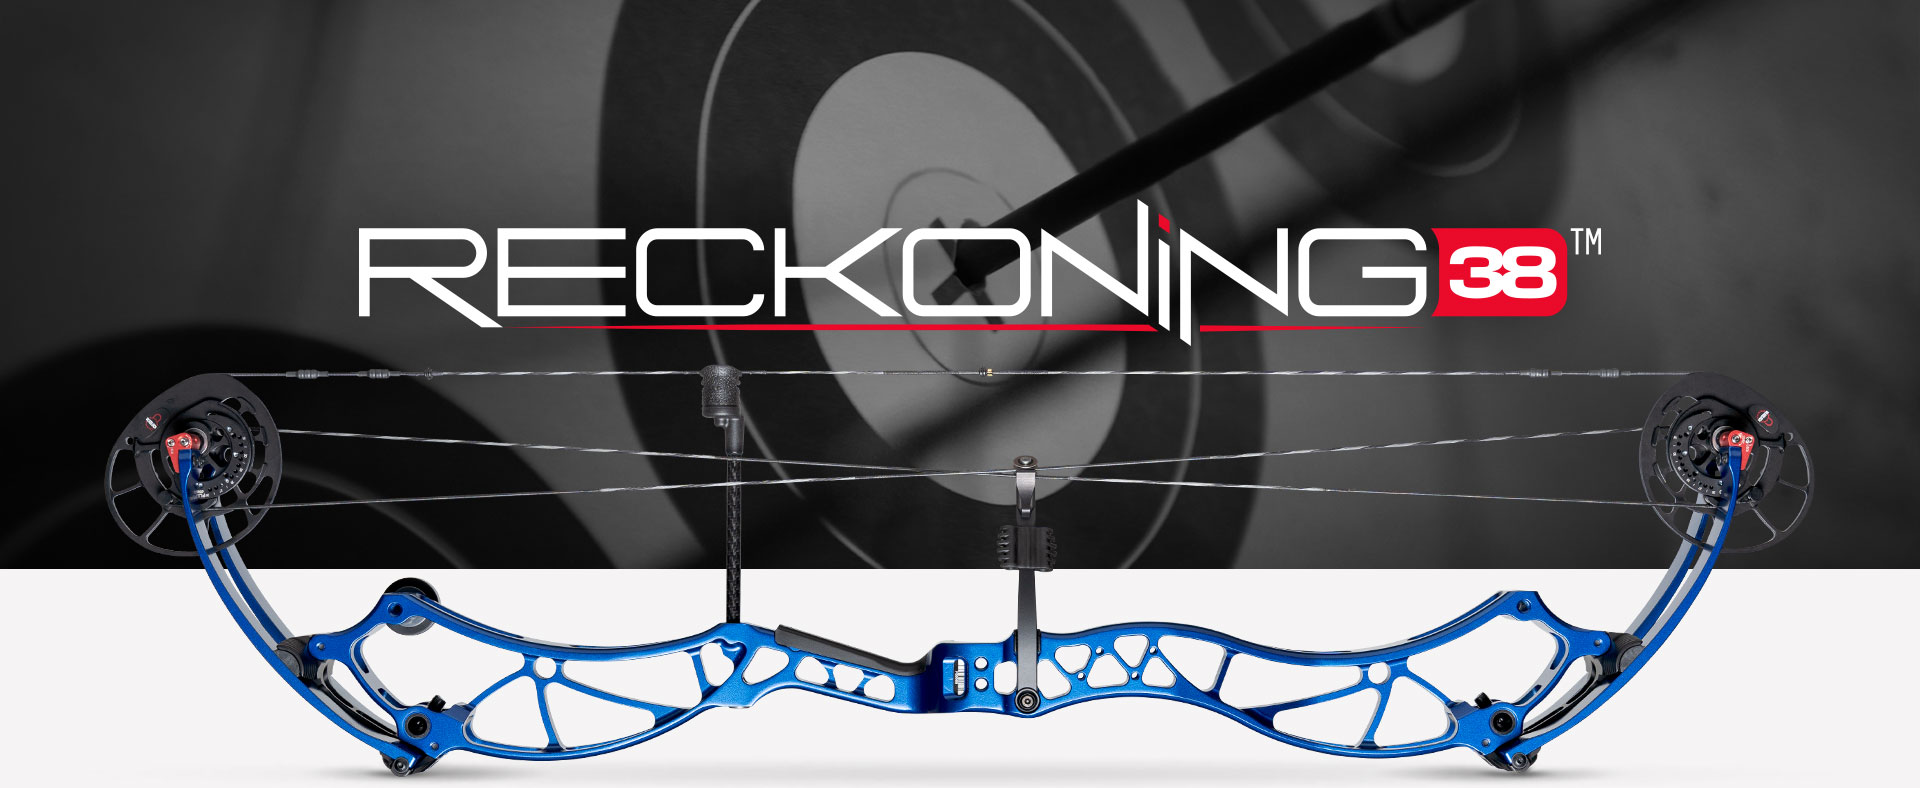 Reckoning 38 target archery bow